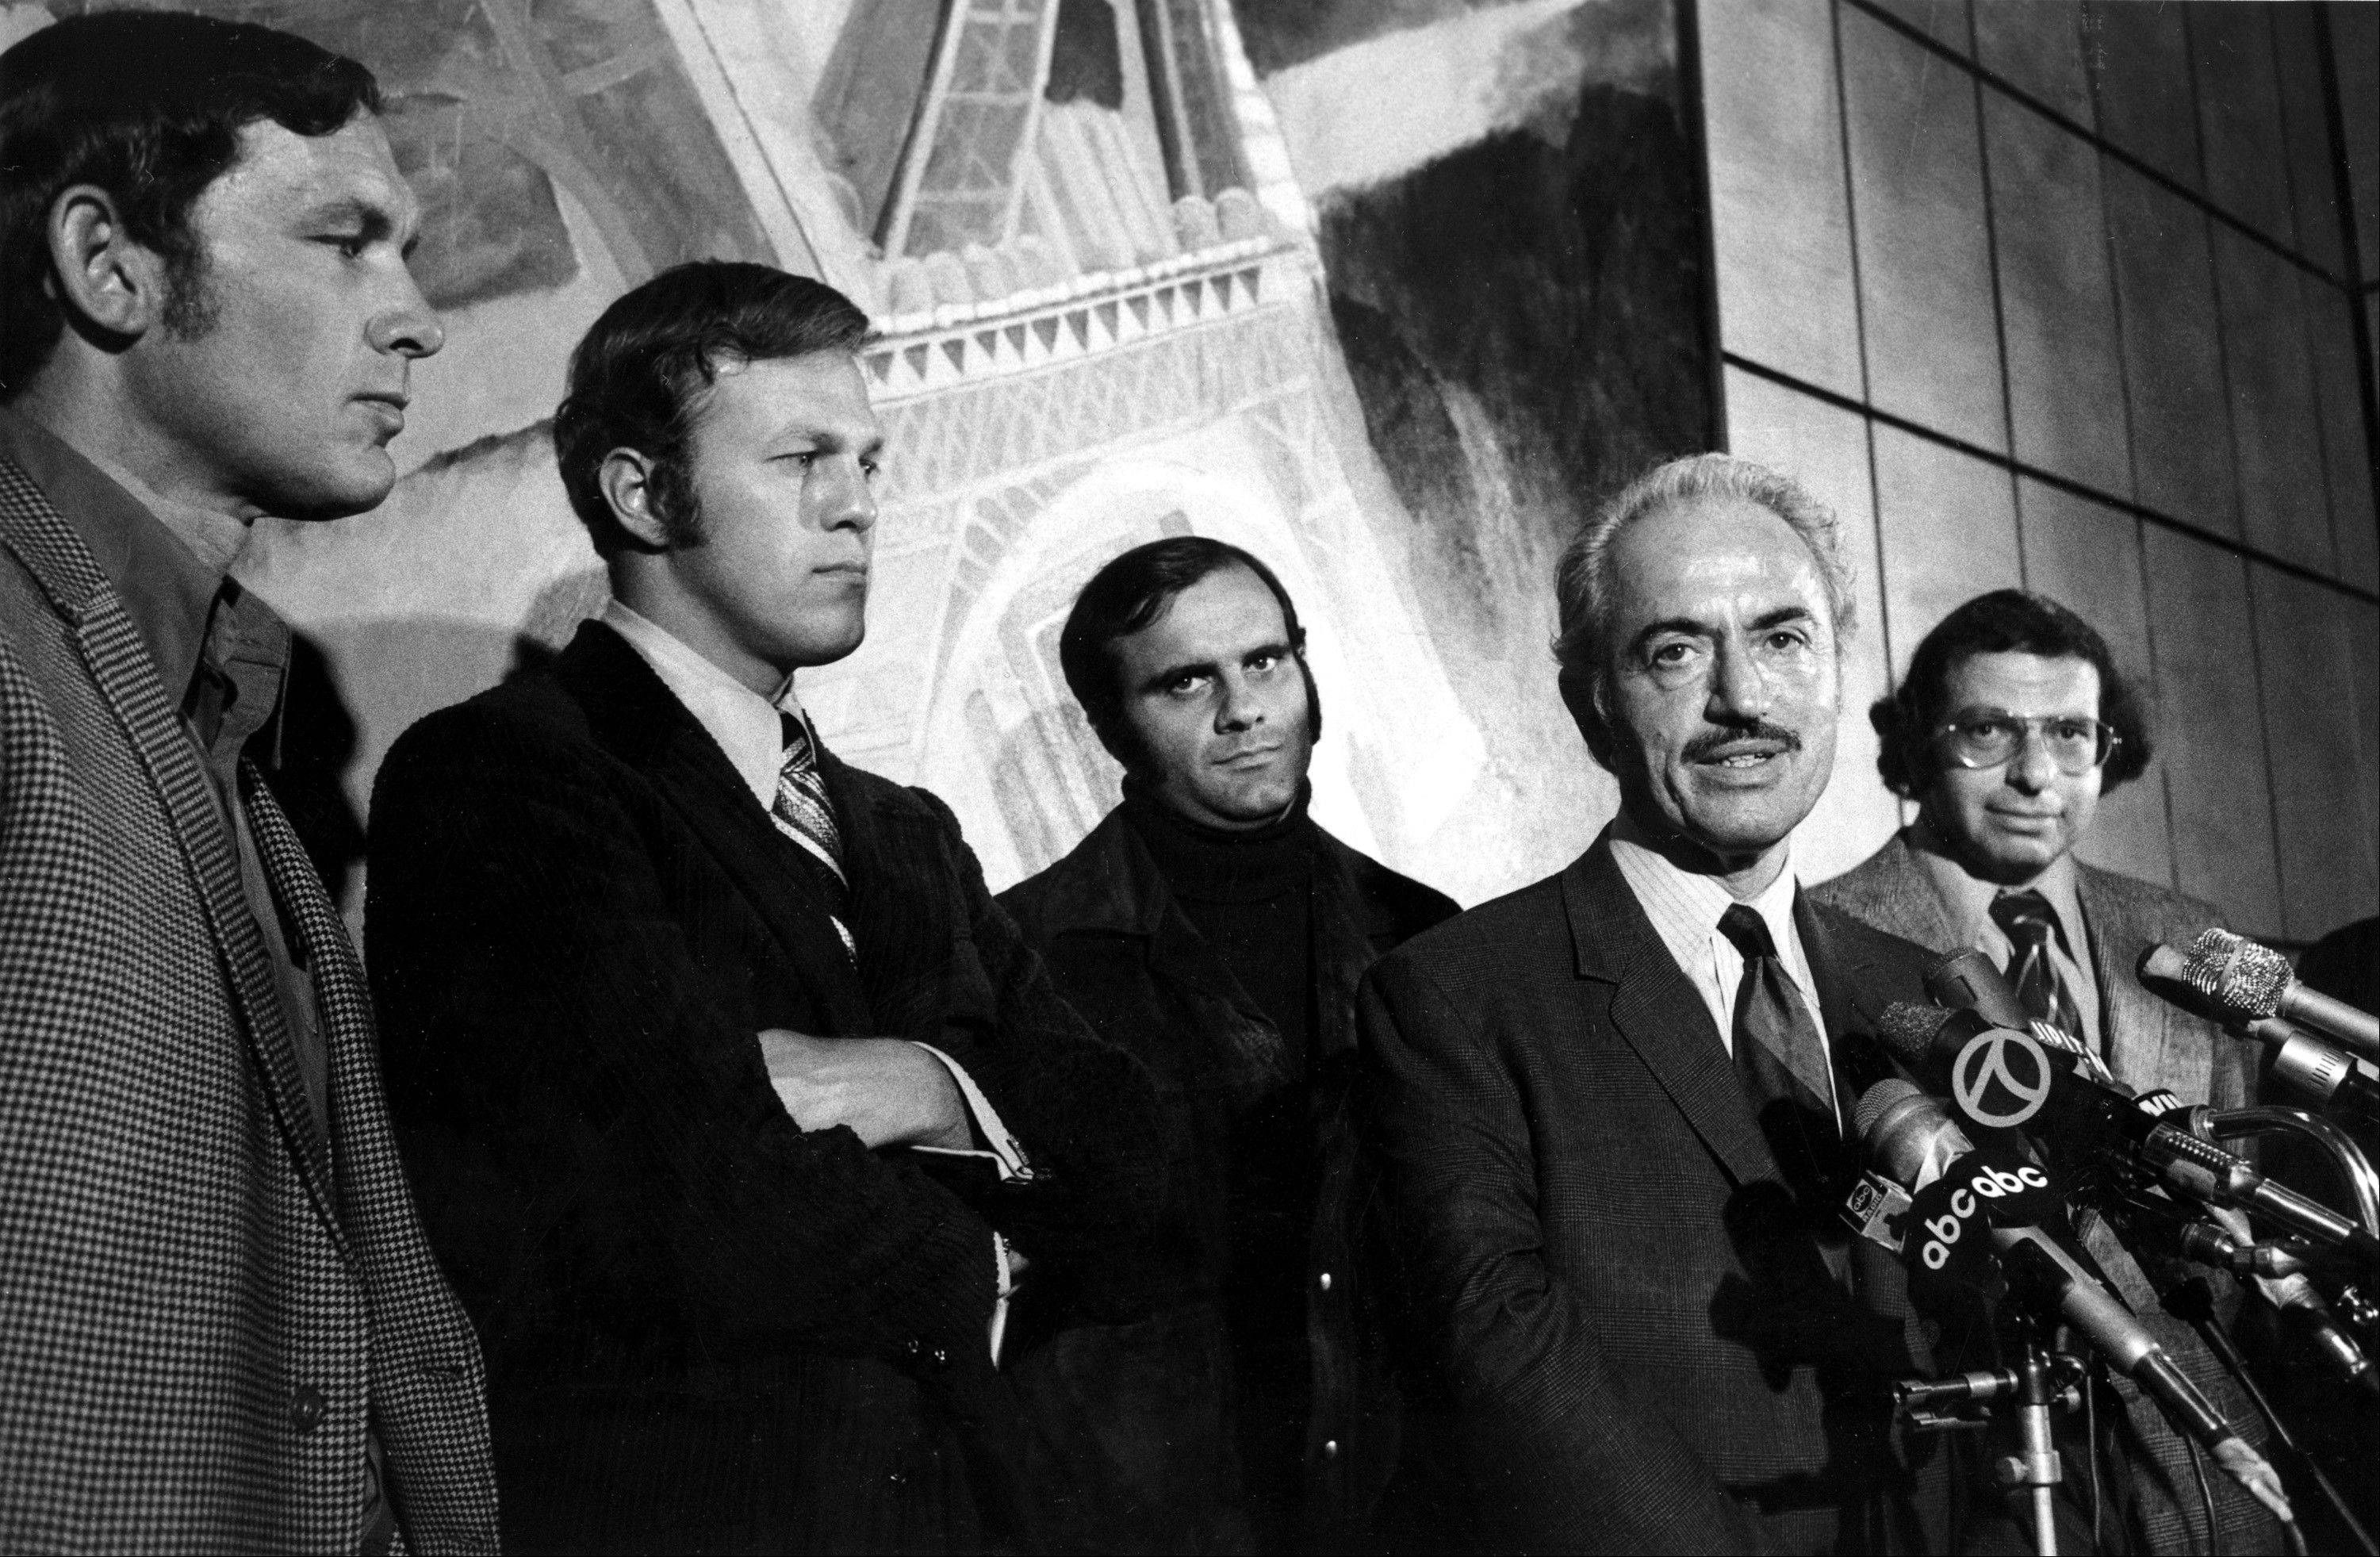 This April 13, 1972 file photo shows Marvin Miller, executive director of the Major League Baseball Players Association, announcing an end to the baseball strike at a news conference in New York. Players shown are, from left, Gary PeTers of the Boston Red Sox, Wes Parker of the Los Angeles Dodgers, and Joe Torre of the St. Louis Cardinals. At right is Dick Moss, general counsel for the association. Miller, the union leader who created free agency for baseball players and revolutionized professional sports with multimillion dollar contracts, died Tuesday, Nov. 27, 2012 in New York. He was 95.